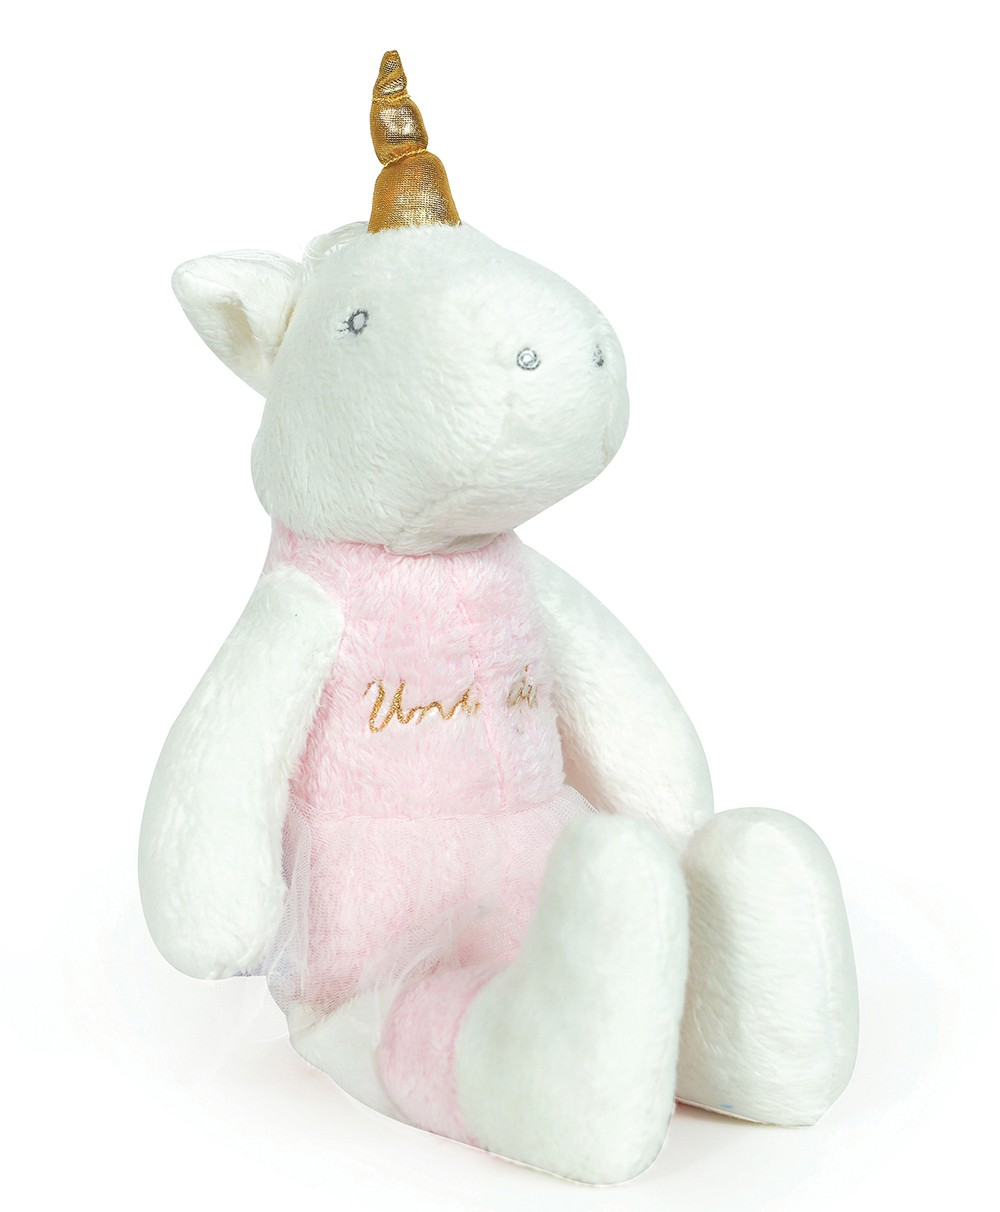 Uniglo Baby Unicorn Soft Toy